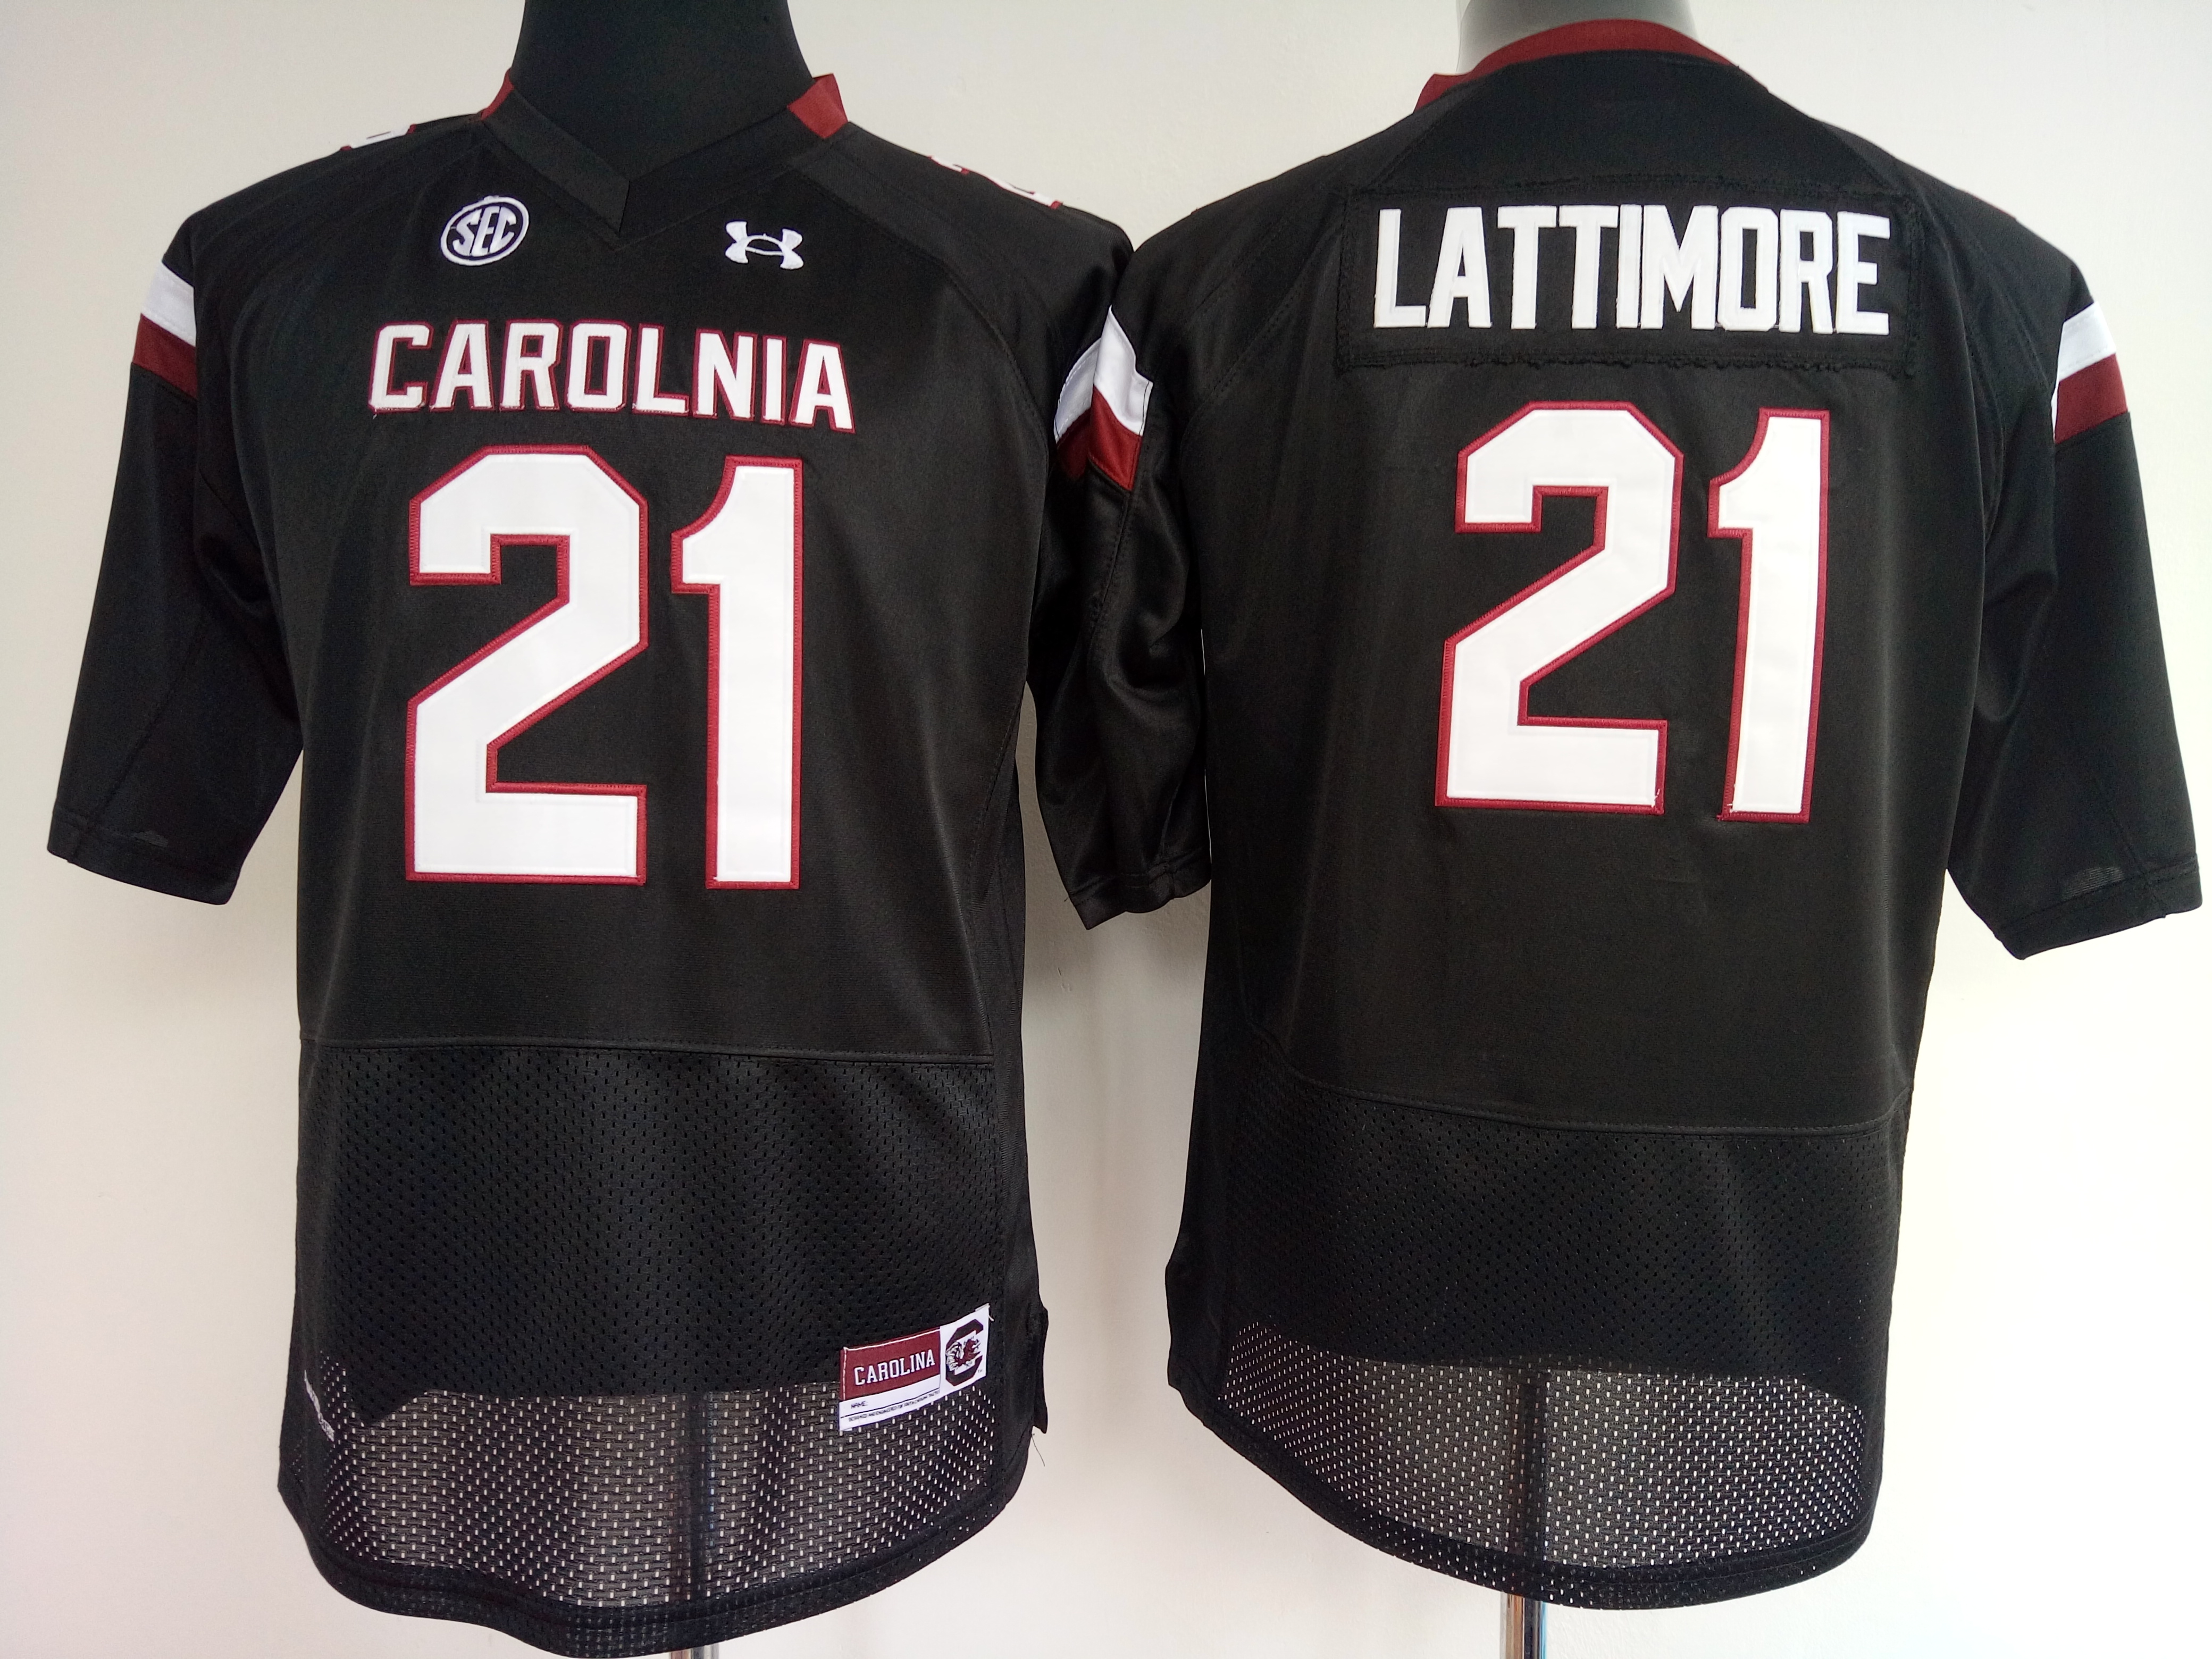 NCAA Womens South Carolina Gamecock Black 21 Lattimore jerseys